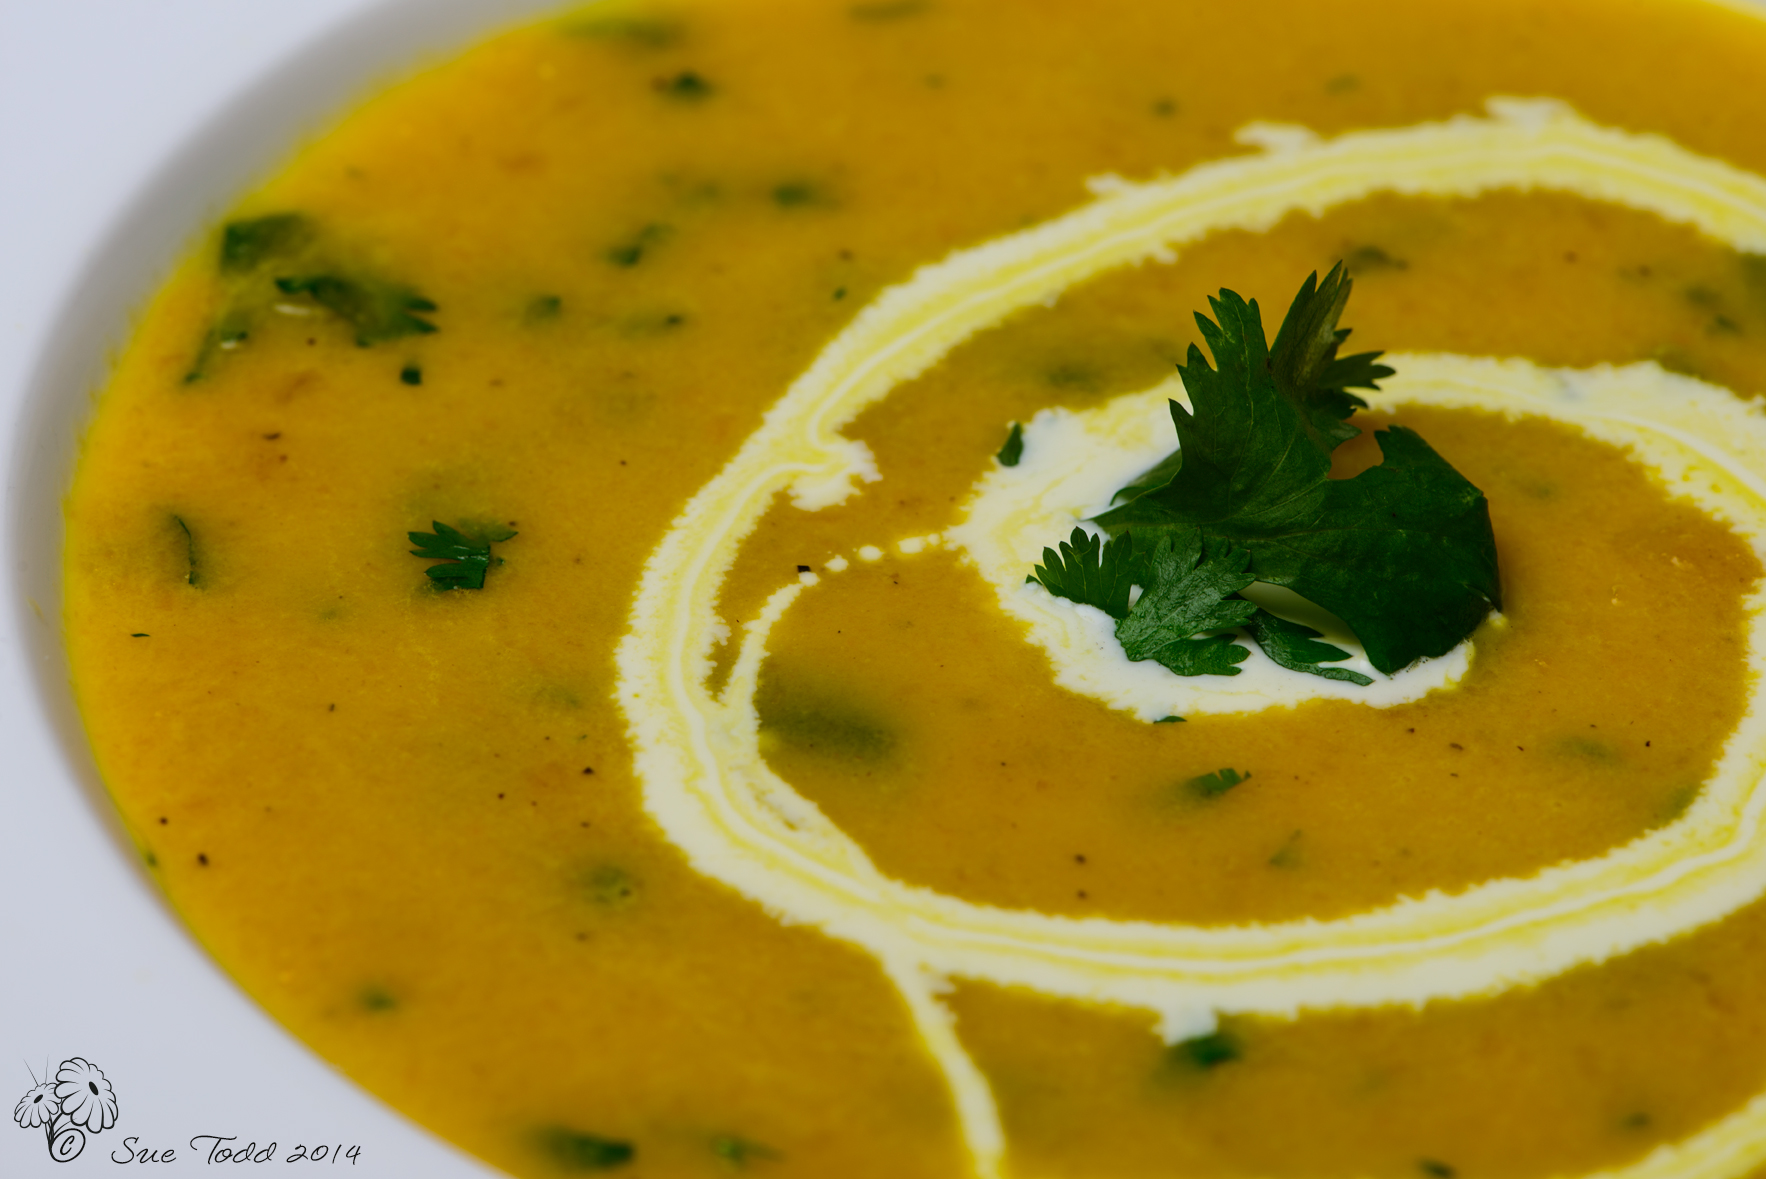 Carrot and Coriander Soup - close up © Sue Todd 2014